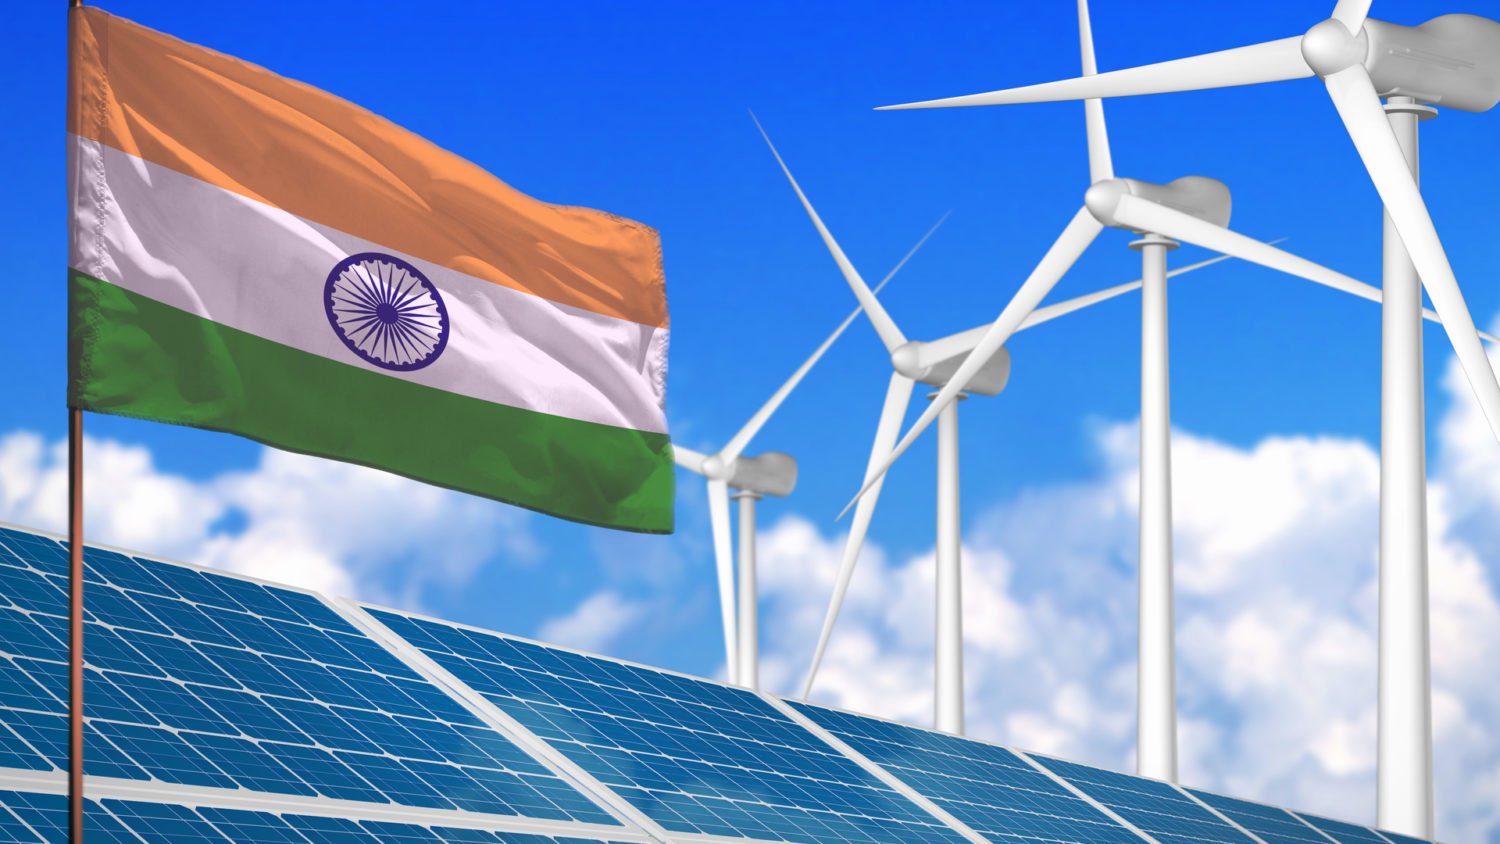 Eye on the tiger: With Temasek renewables push, EQT makes its first move in India